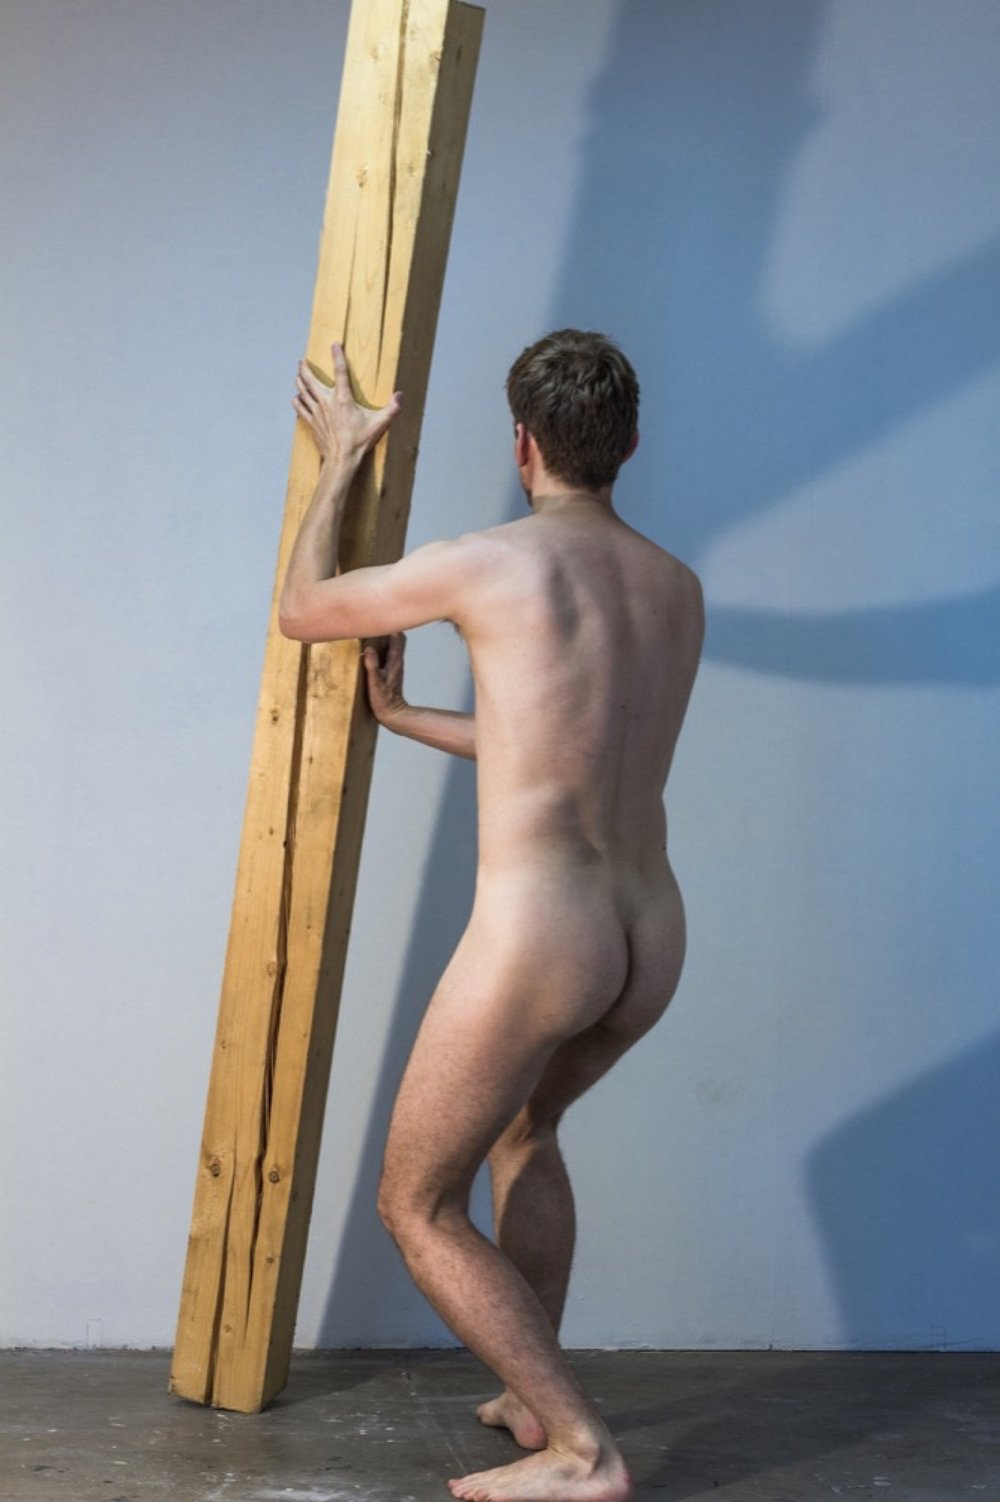 Puklus Péter: Erection 2016. photograph